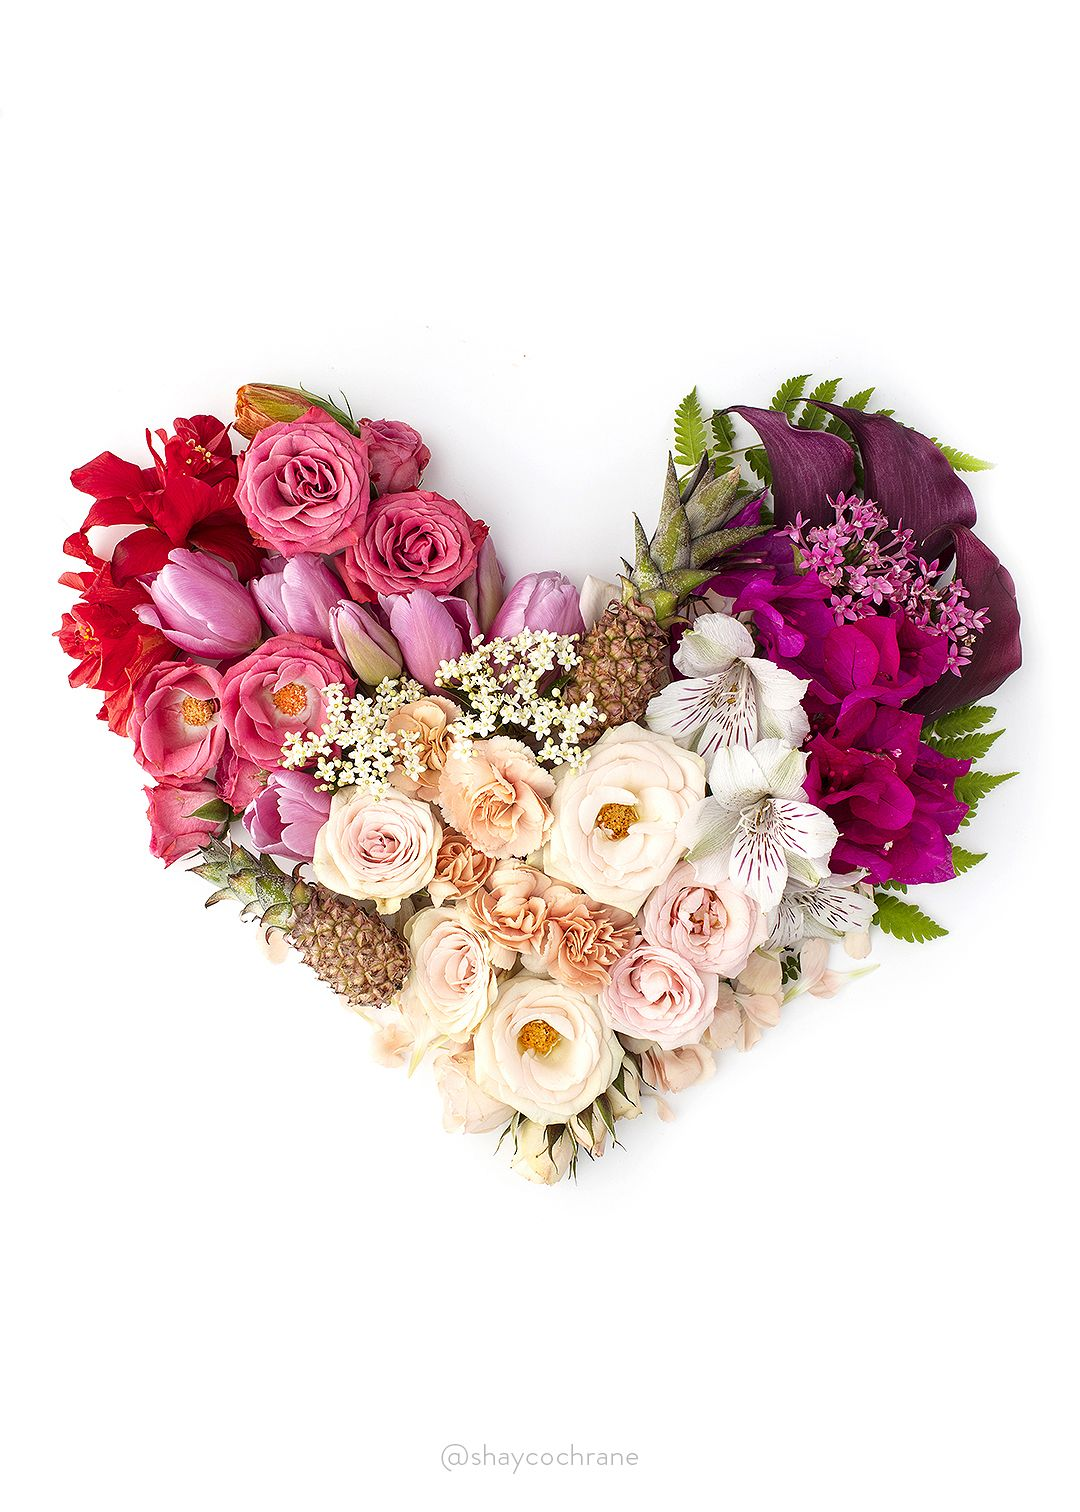 Love is beautiful valentines heart floral styling by shay cochrane love is beautiful valentines heart floral styling by shay cochrane scstockshop izmirmasajfo Choice Image